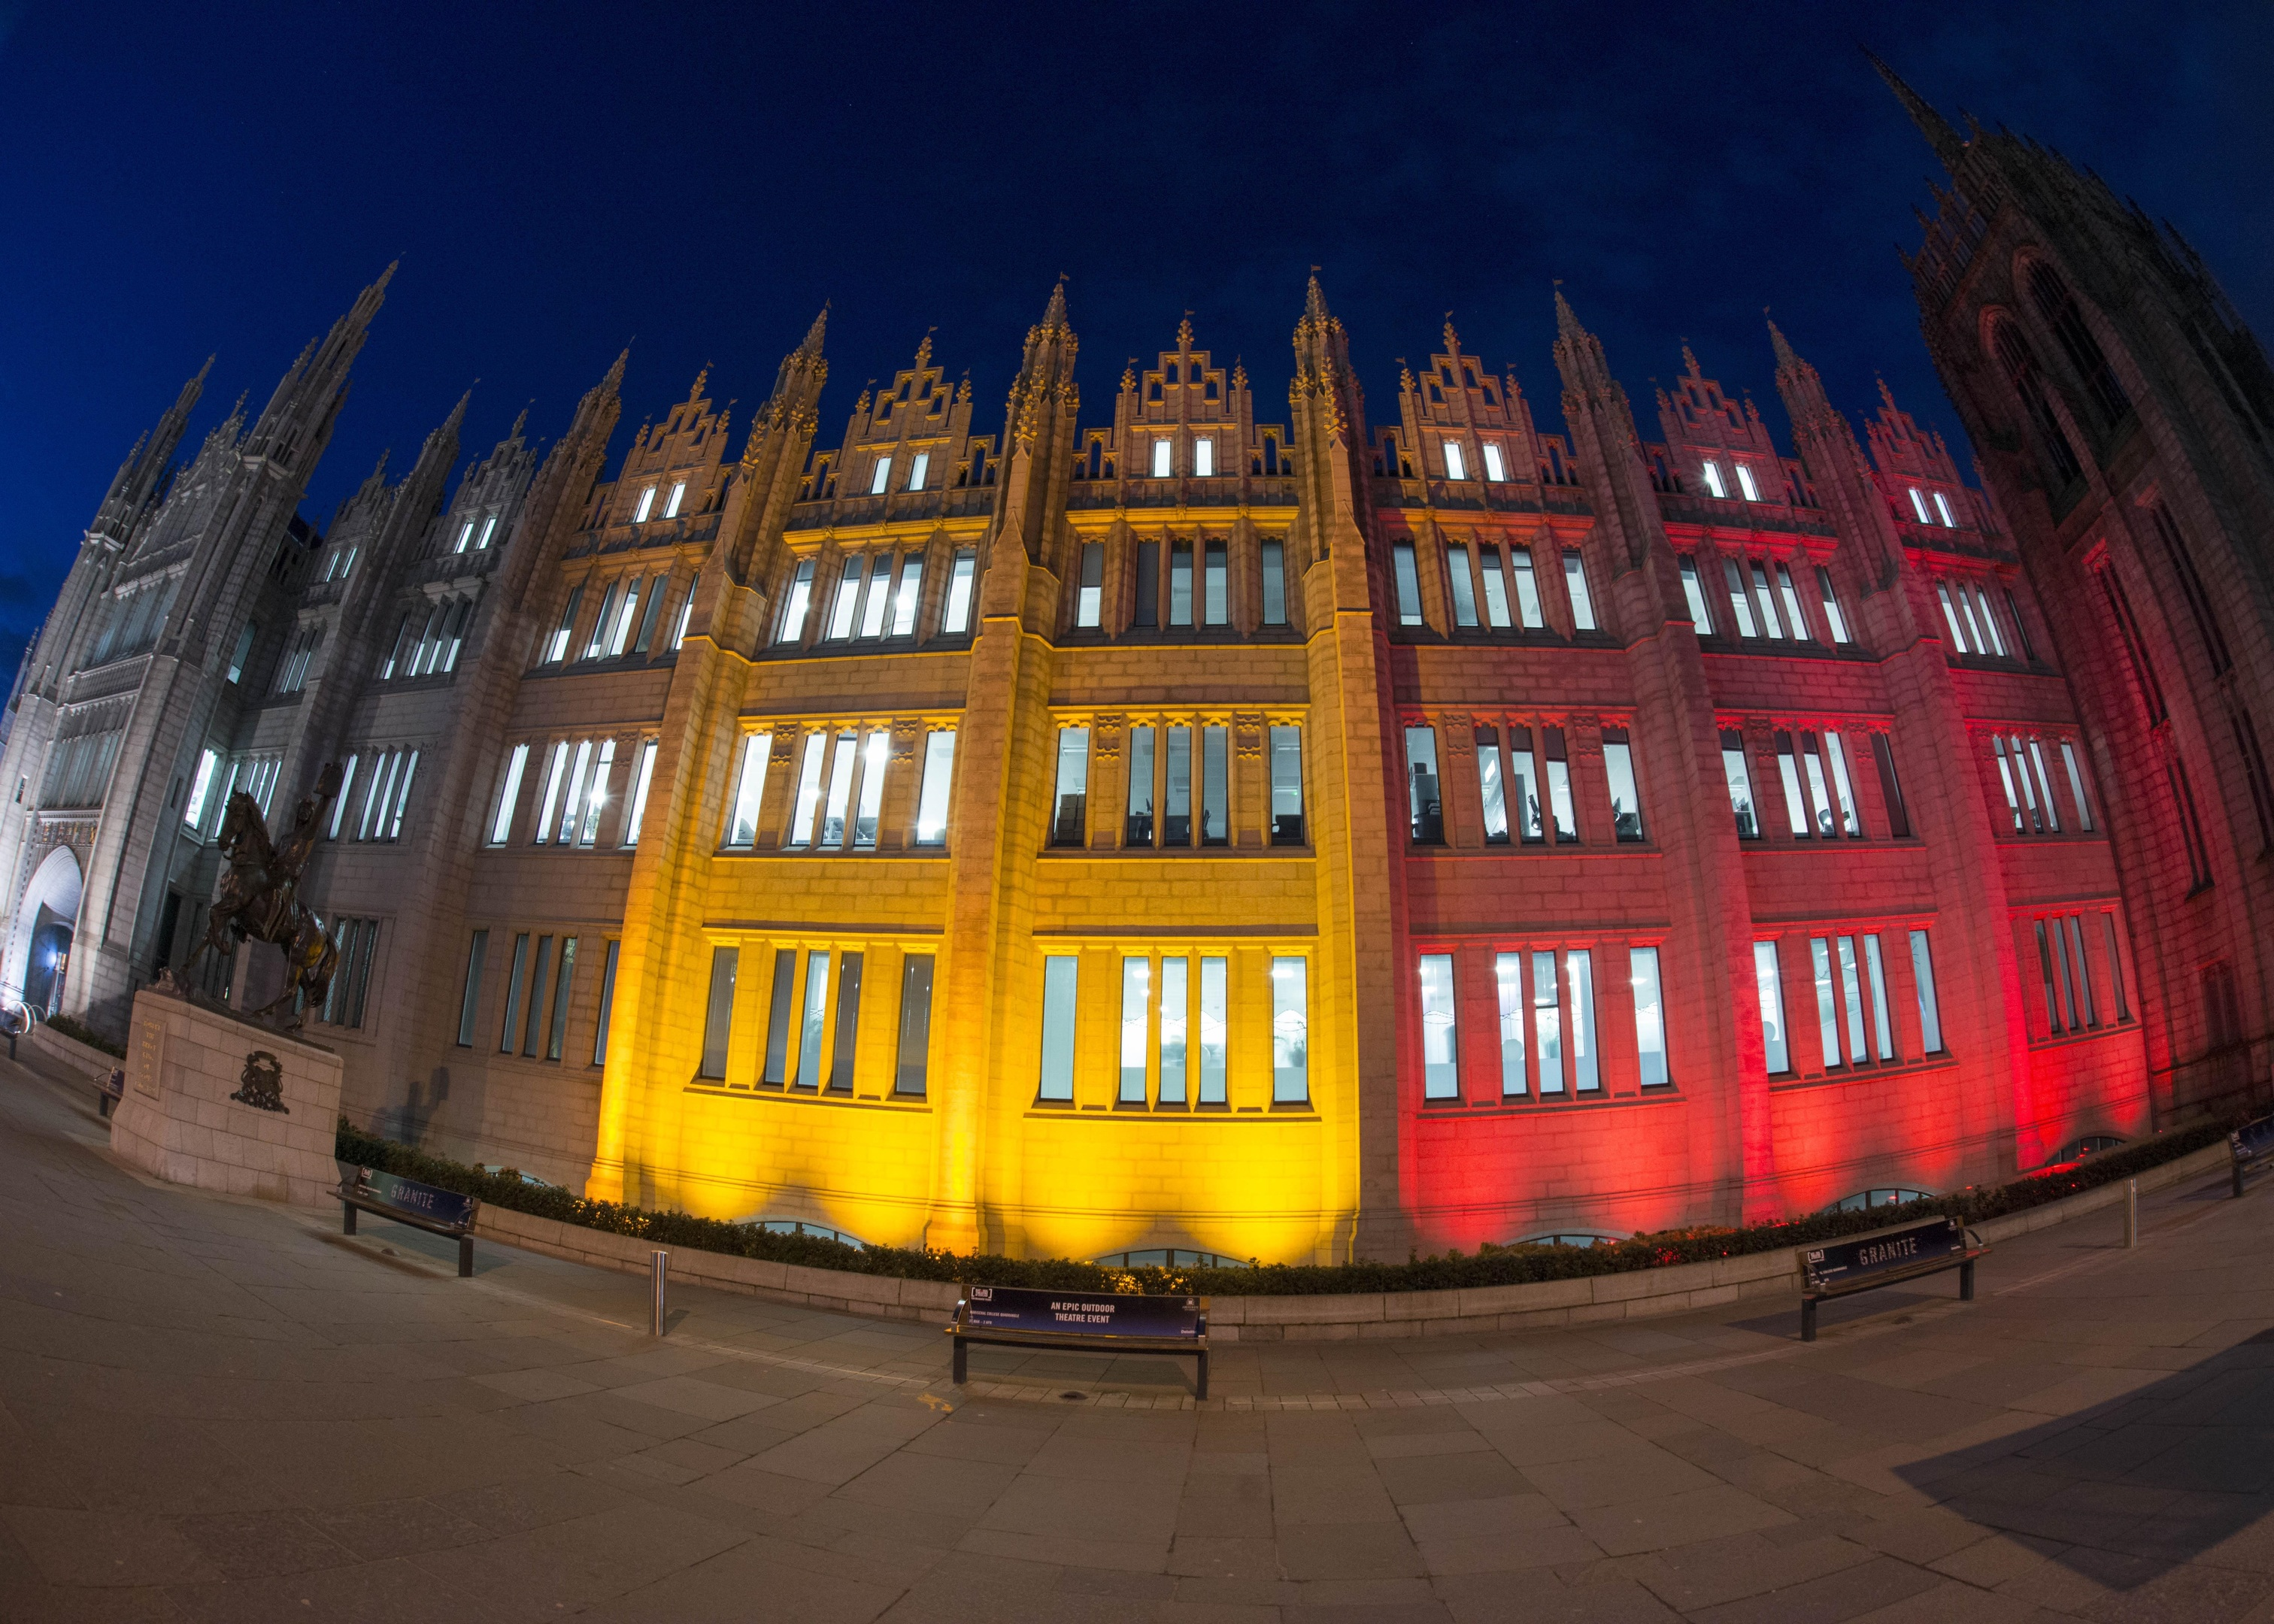 23/03/16 Marischal lit up fwith colours of Belgium flag